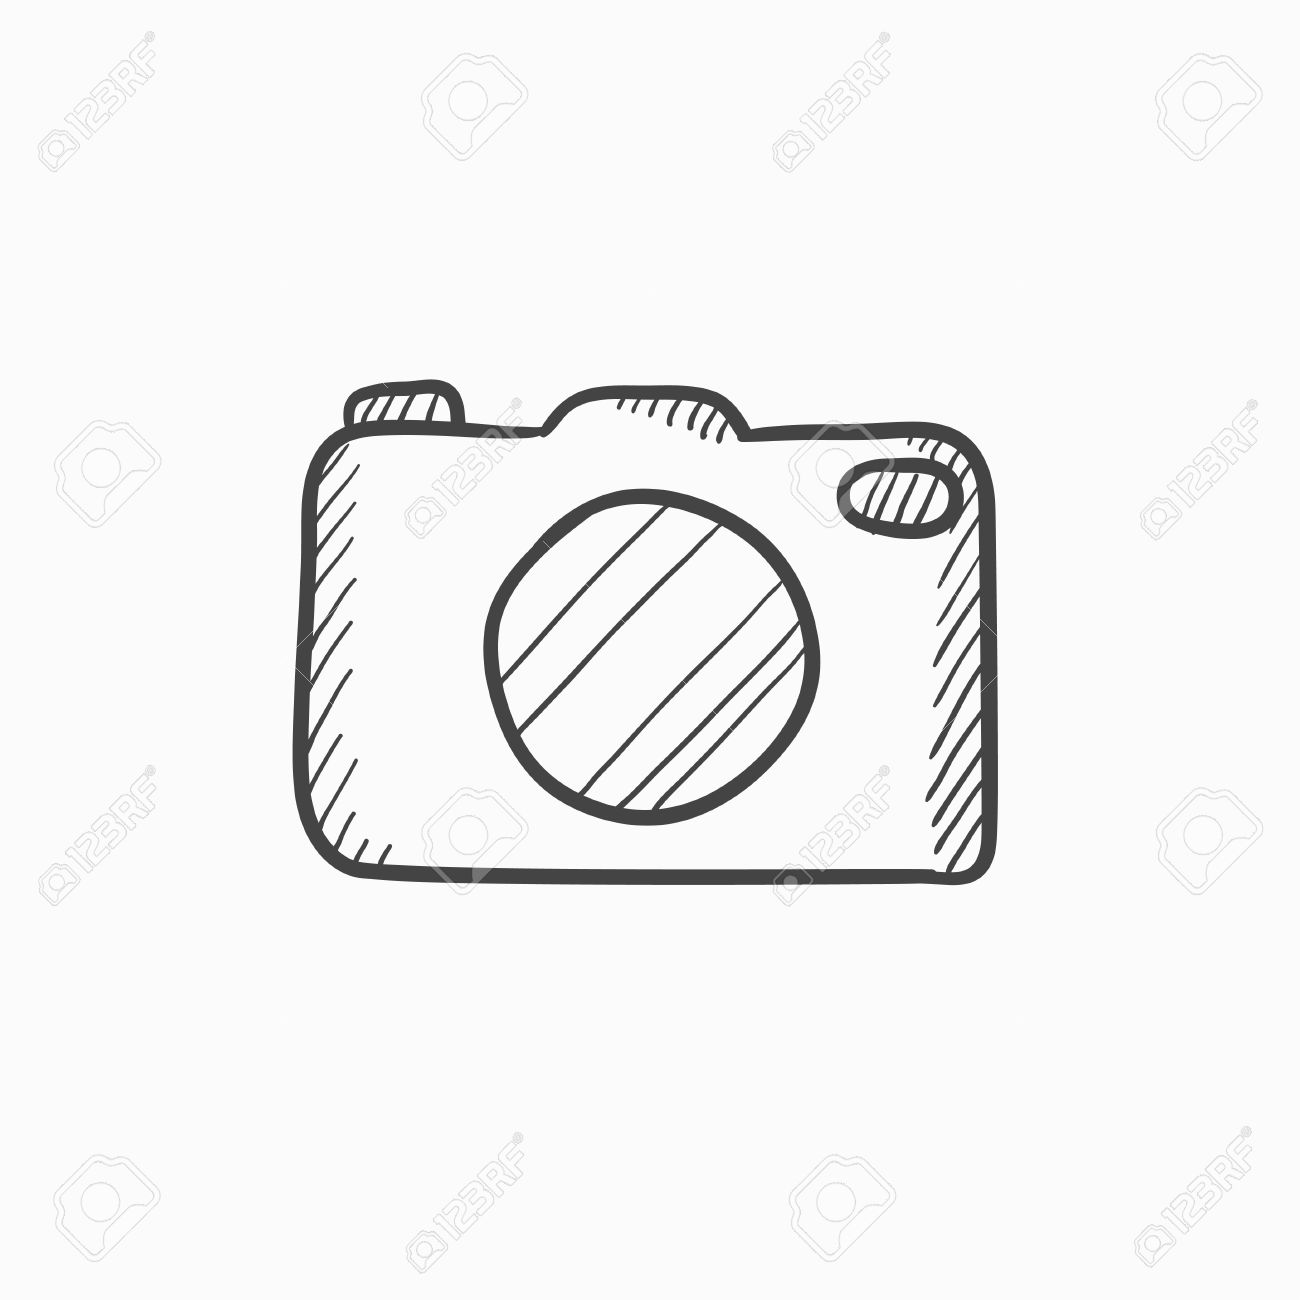 Camera Vector Sketch Icon Isolated On Background Hand Drawn